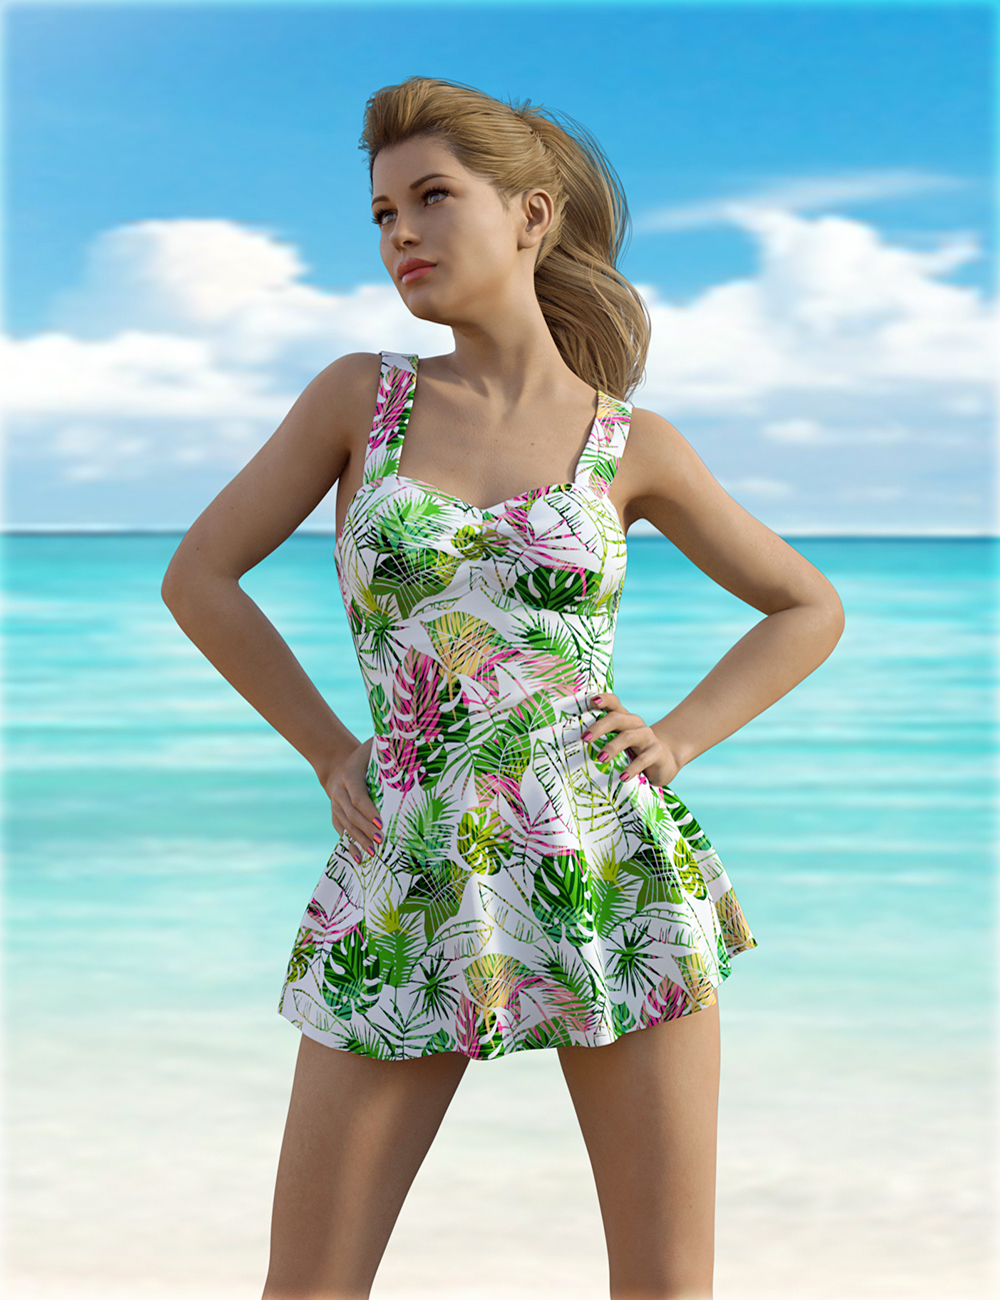 dForce H&C One Piece Swimsuit B for Genesis 8 Female(s) by: IH Kang, 3D Models by Daz 3D